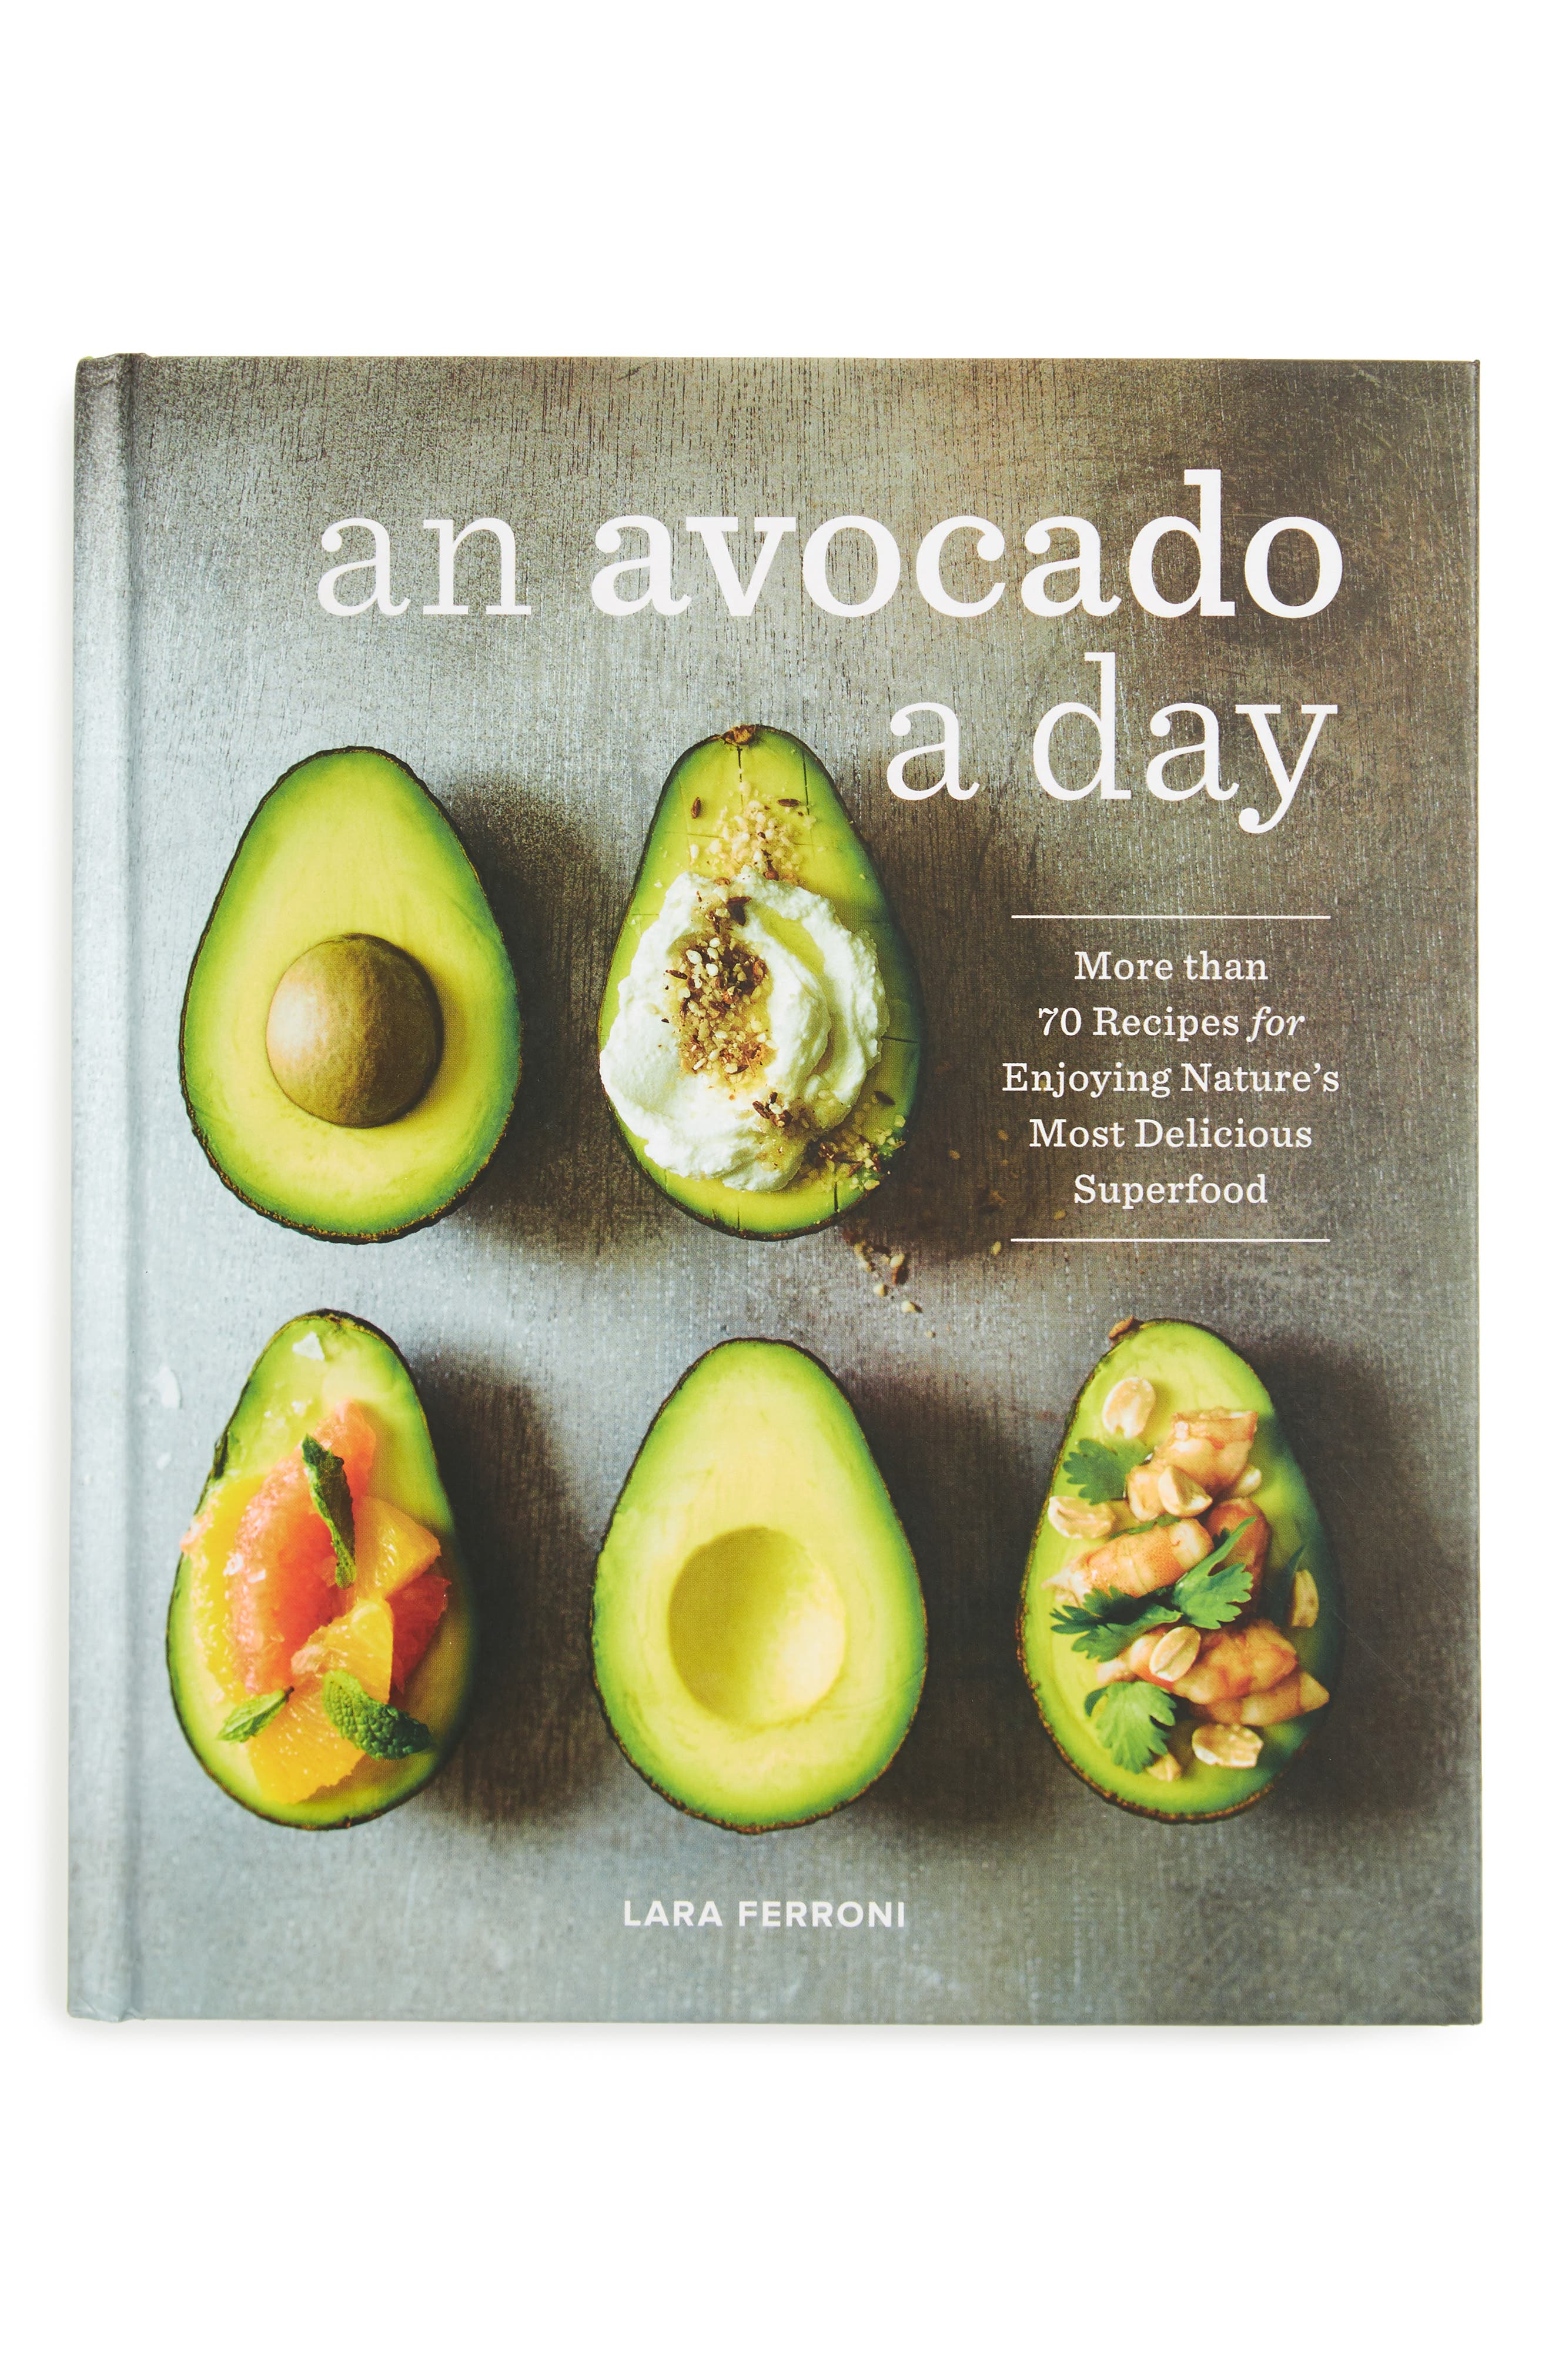 'An Avocado a Day: More Than 70 Recipes for Enjoying Nature's Most Delicious Superfood' Recipe Book